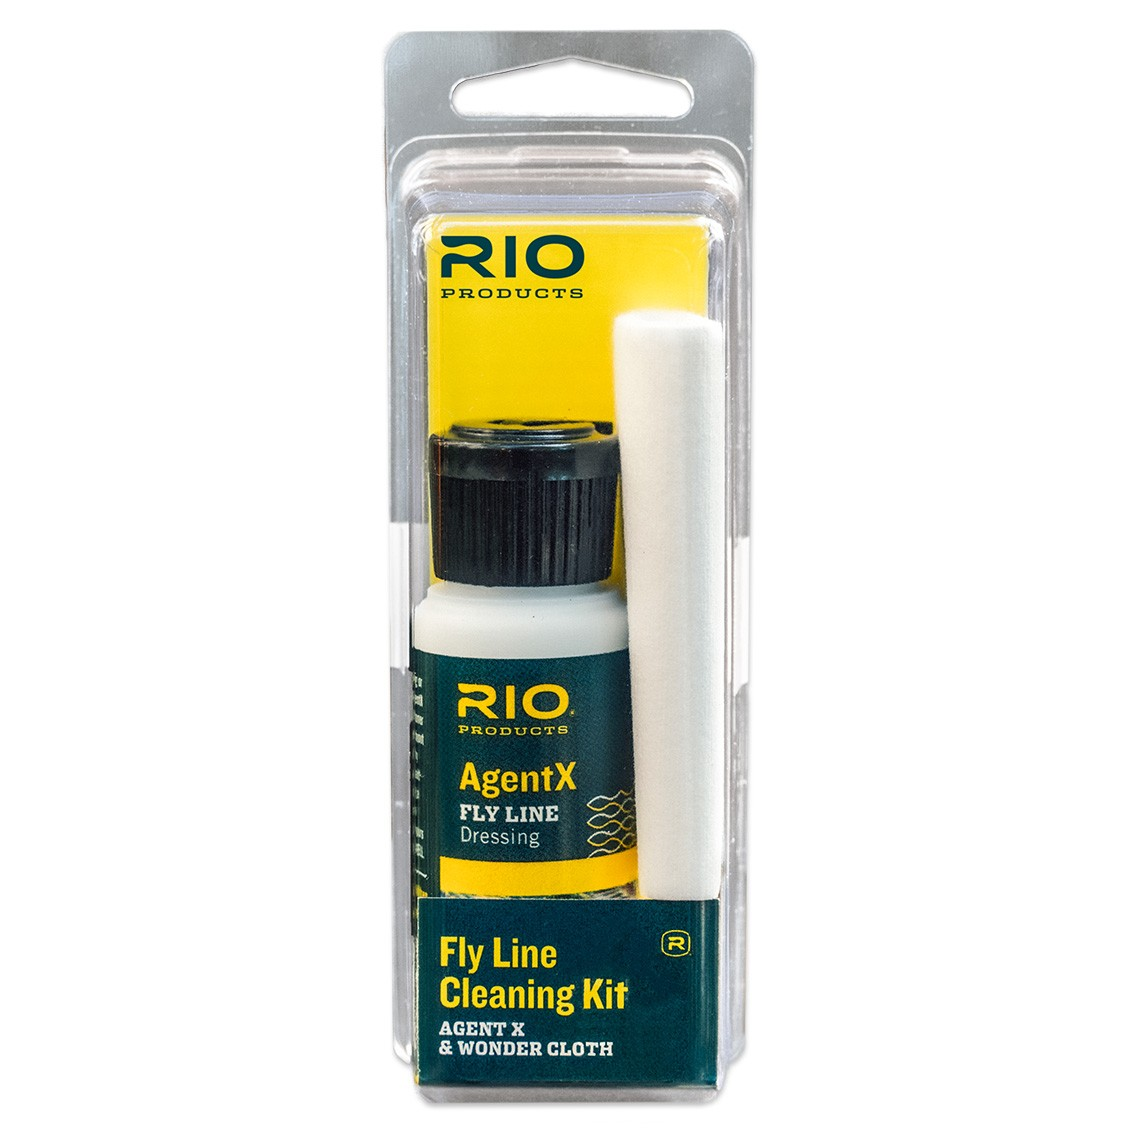 Fly Line Cleaning Kit RIO AgentX